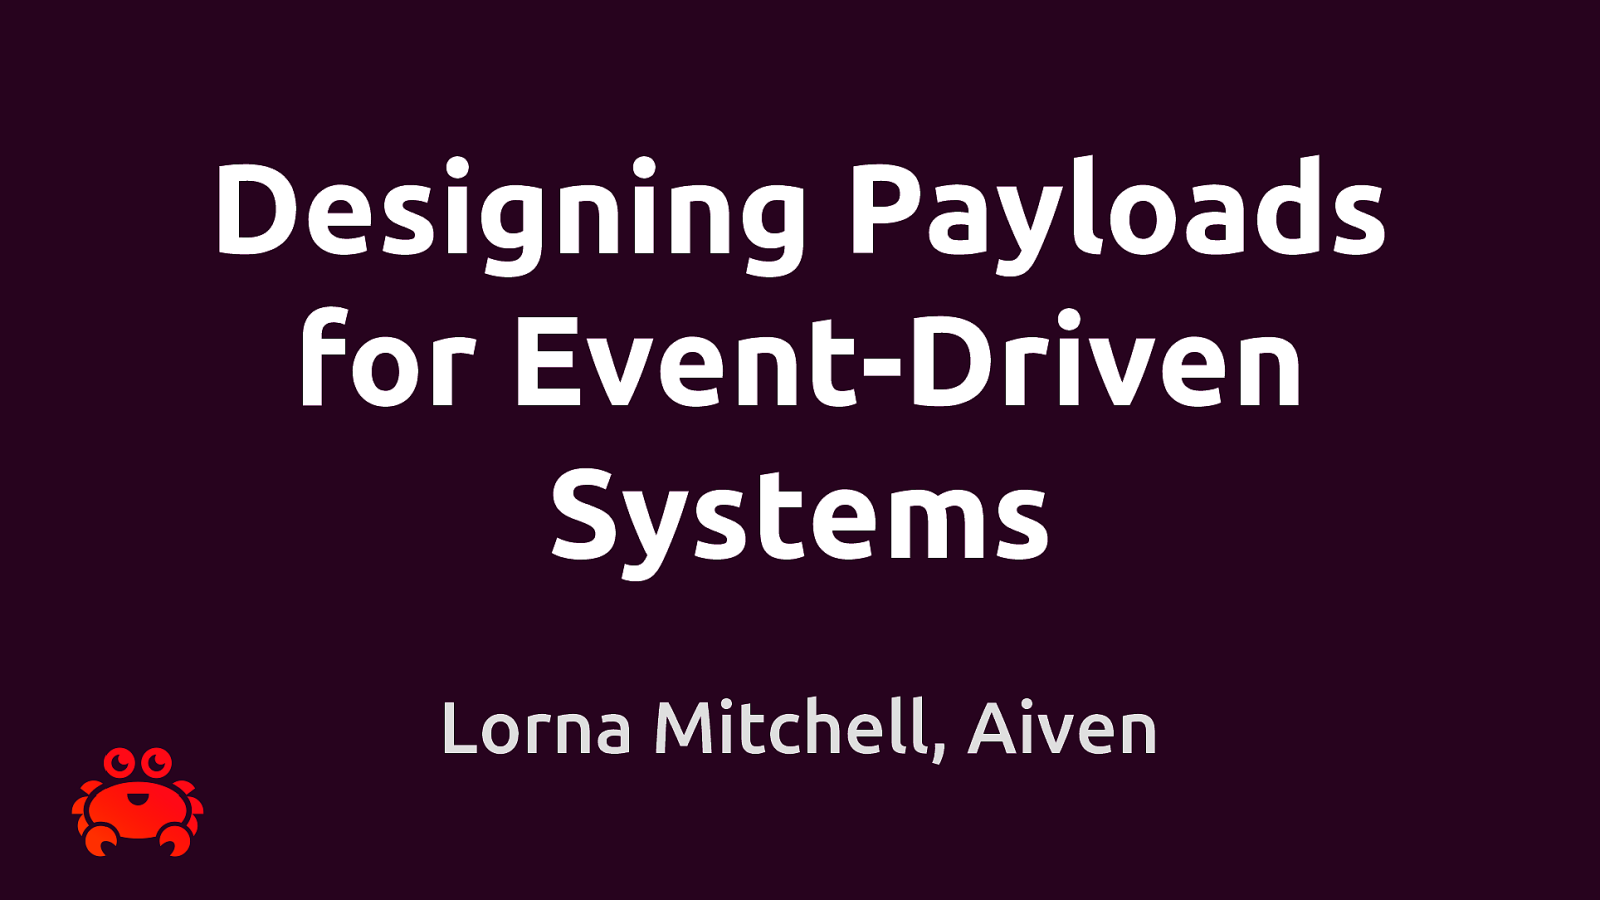 Designing Payloads for Event-Driven Systems